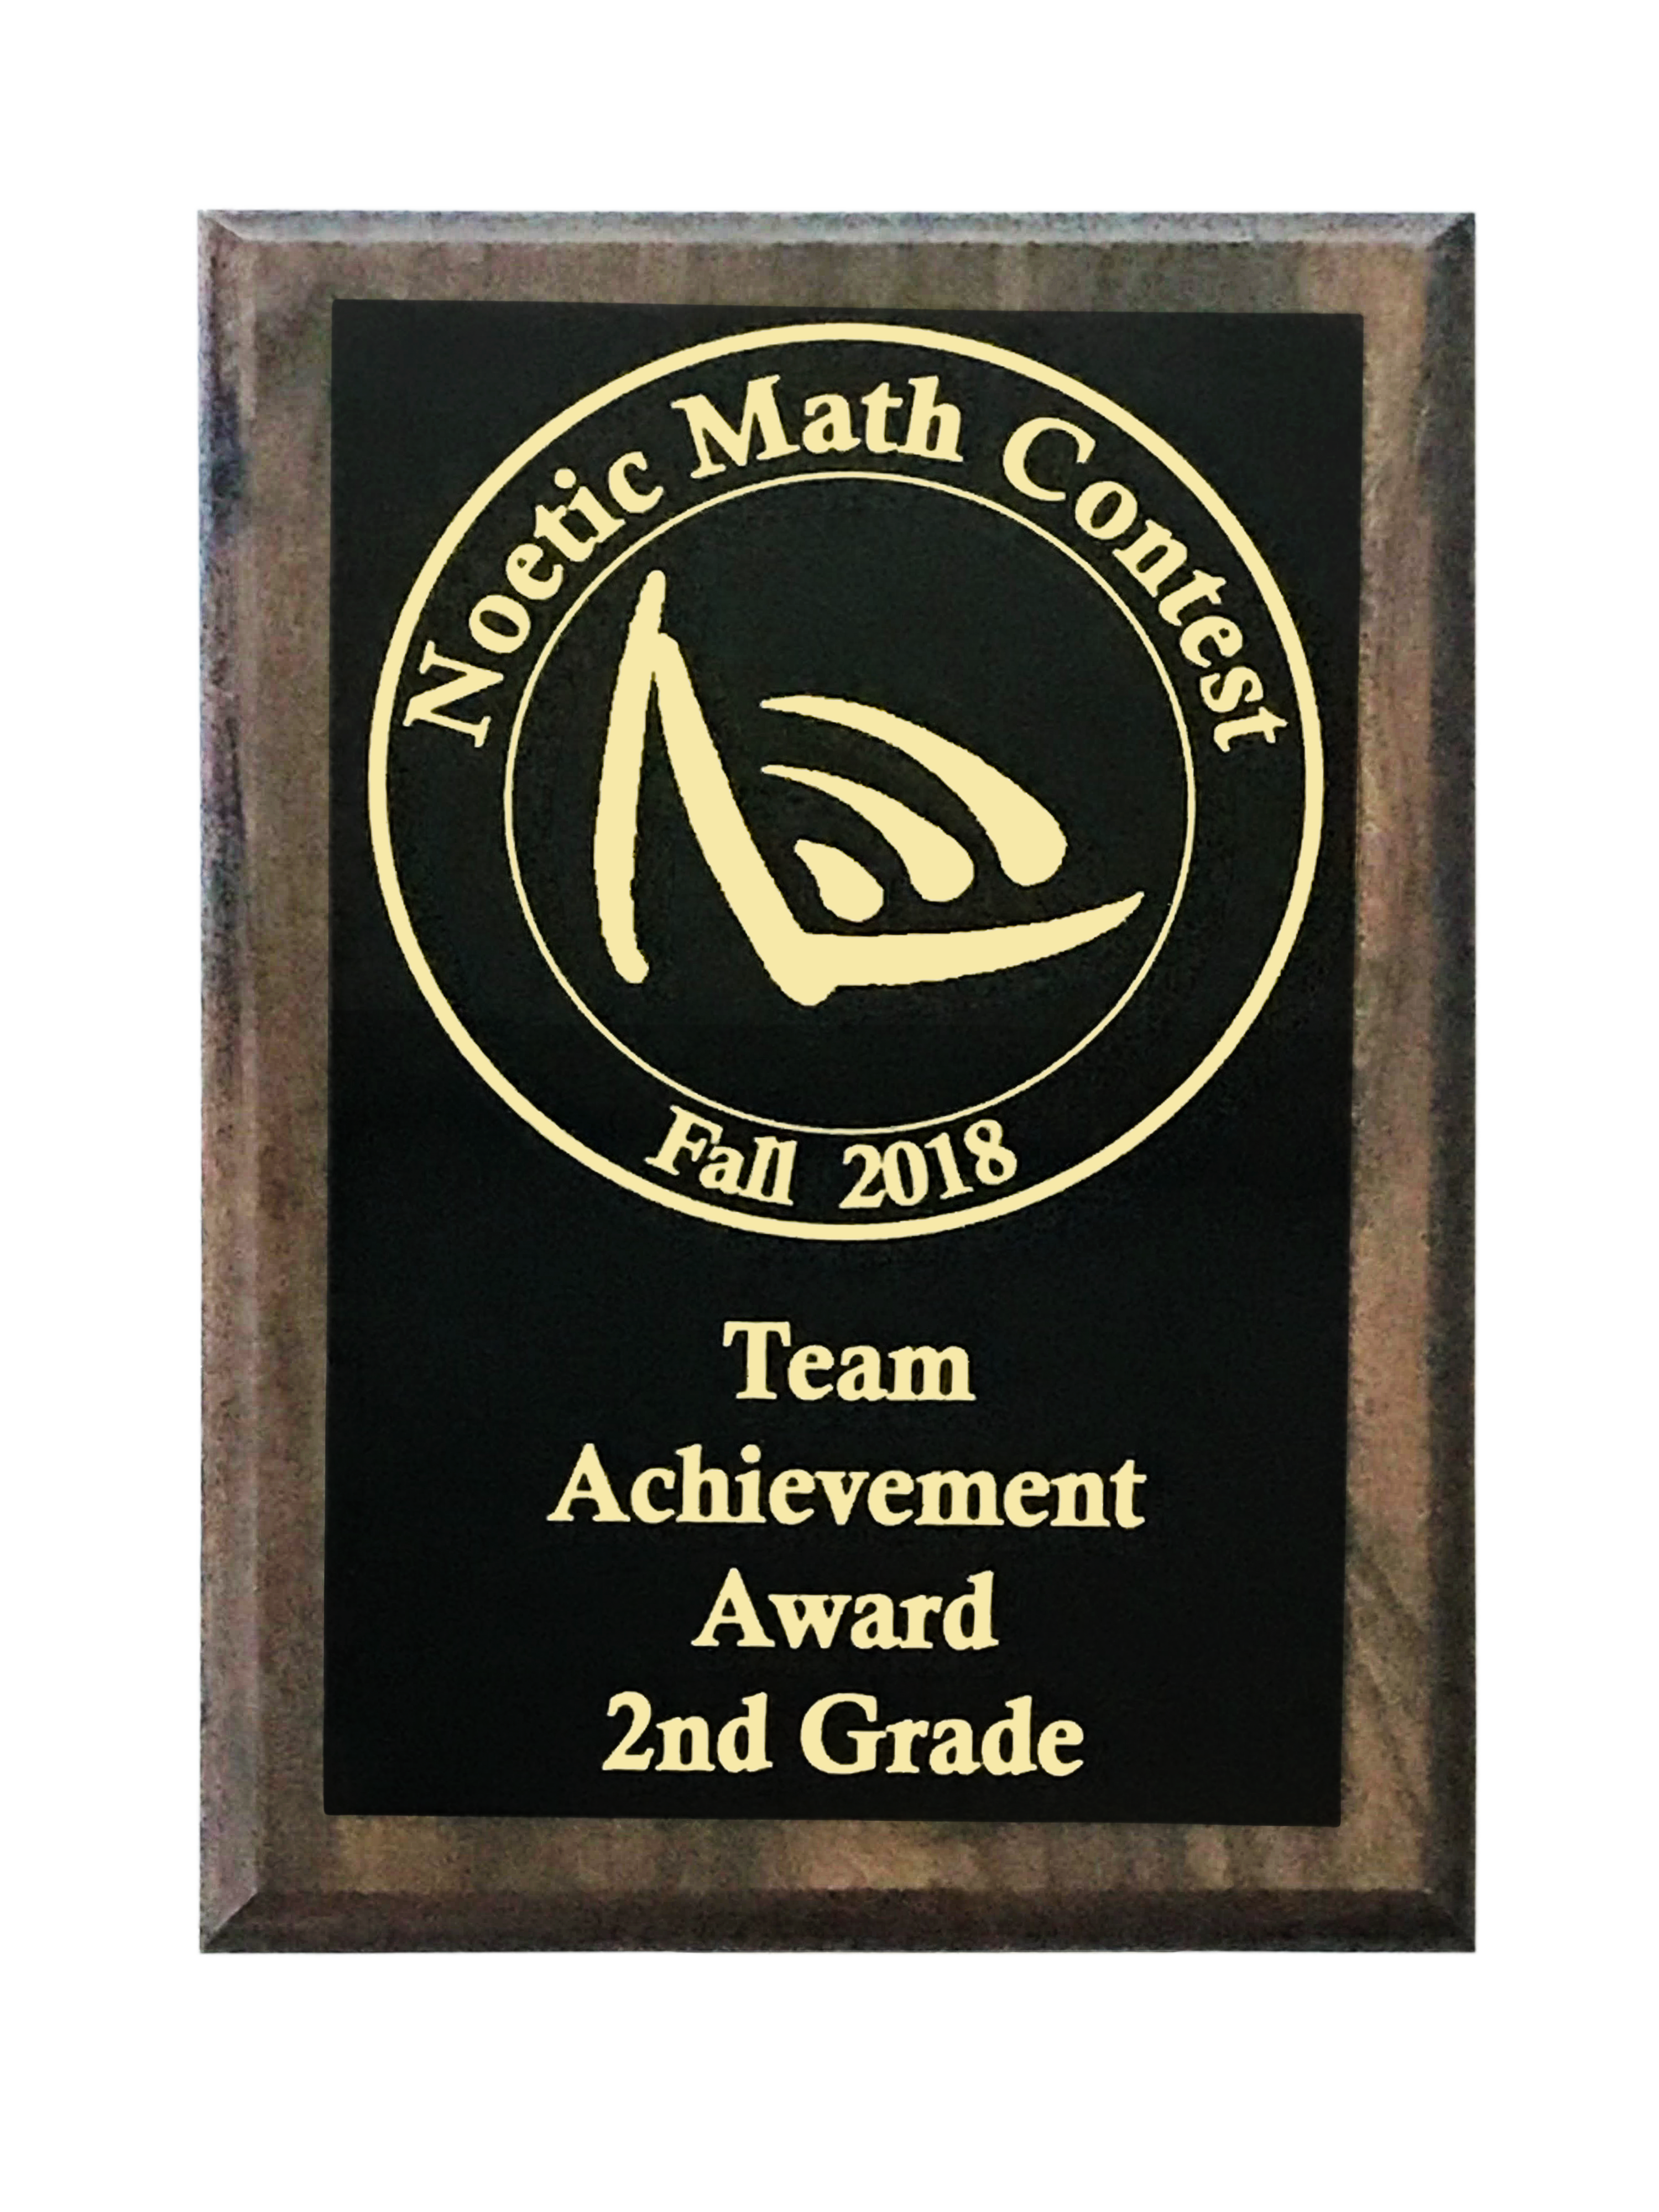 Math Contest for Students in Grades 2, 3, 4, 5 and 6